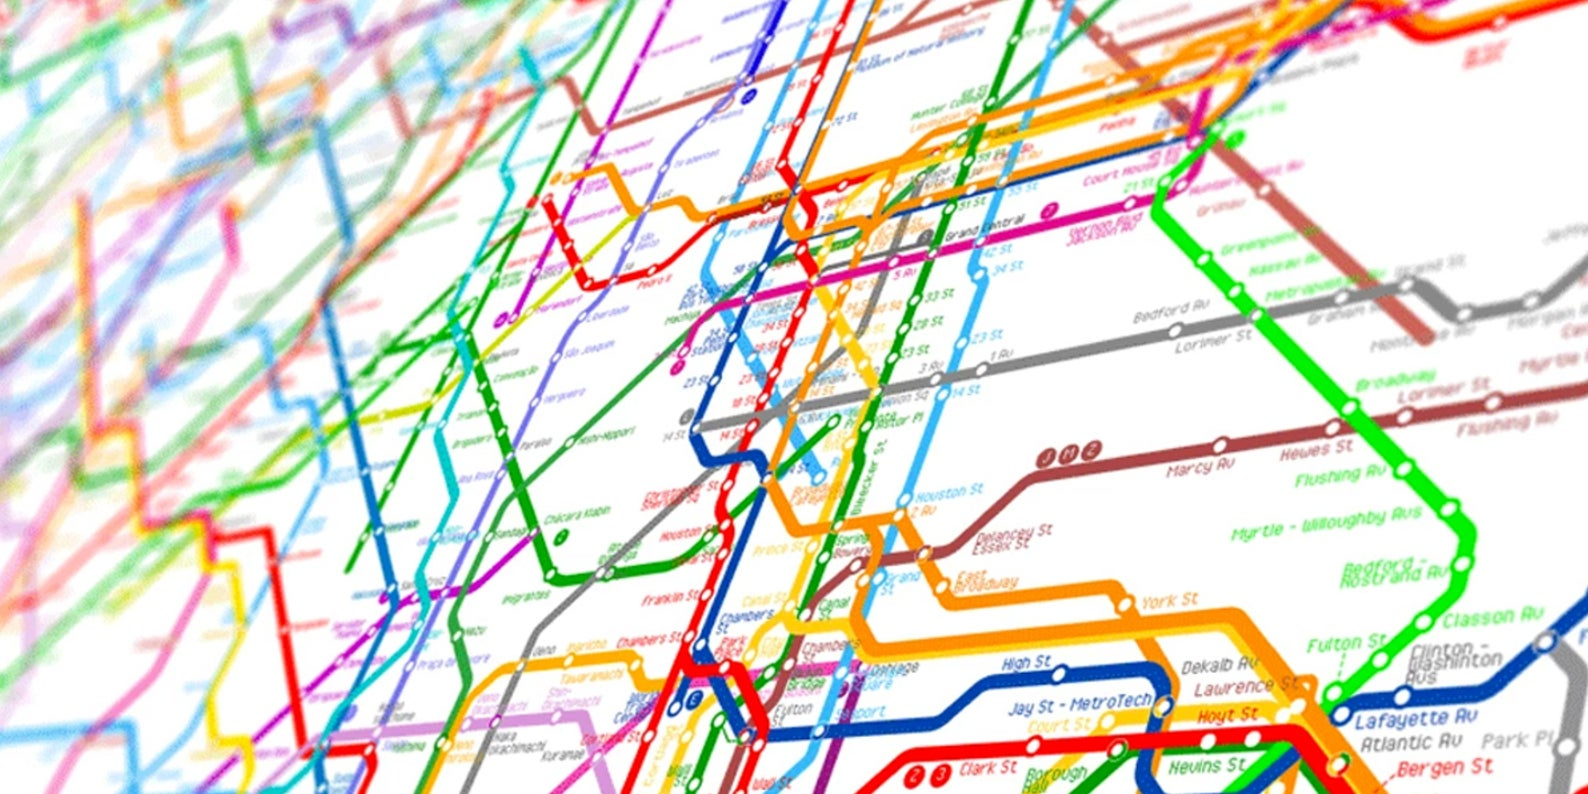 The World Metro Map Combines 214 Subway Systems Into One Glorious Mess